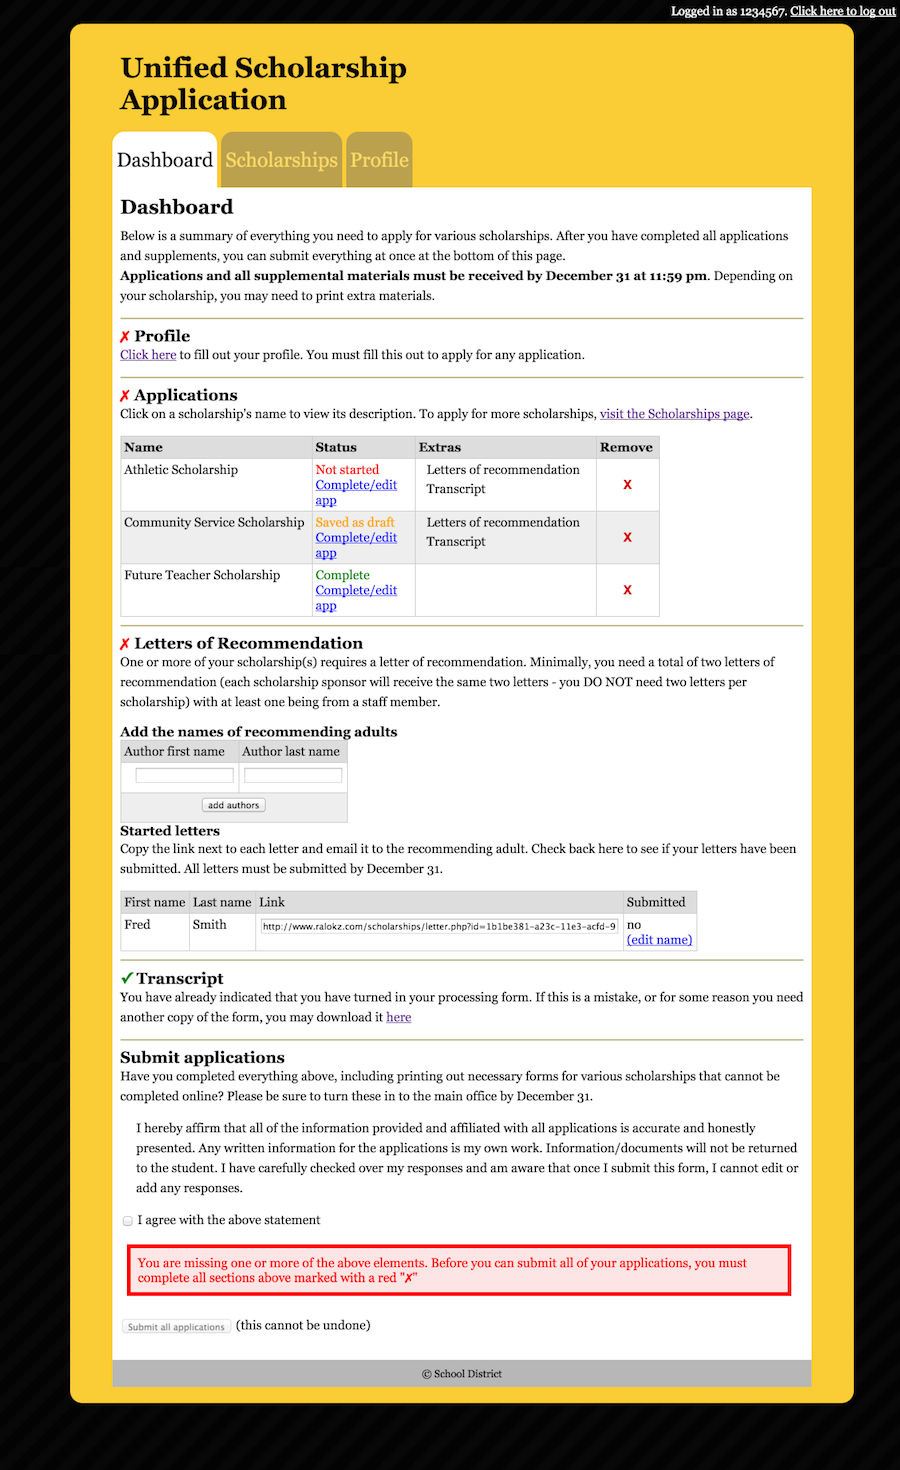 A dashboard that shows information about the user's profile, a list of scholarship applications with thei status for each, a list of letters of recommendation, the status of the user's transcript, and a tool to submit all applications.